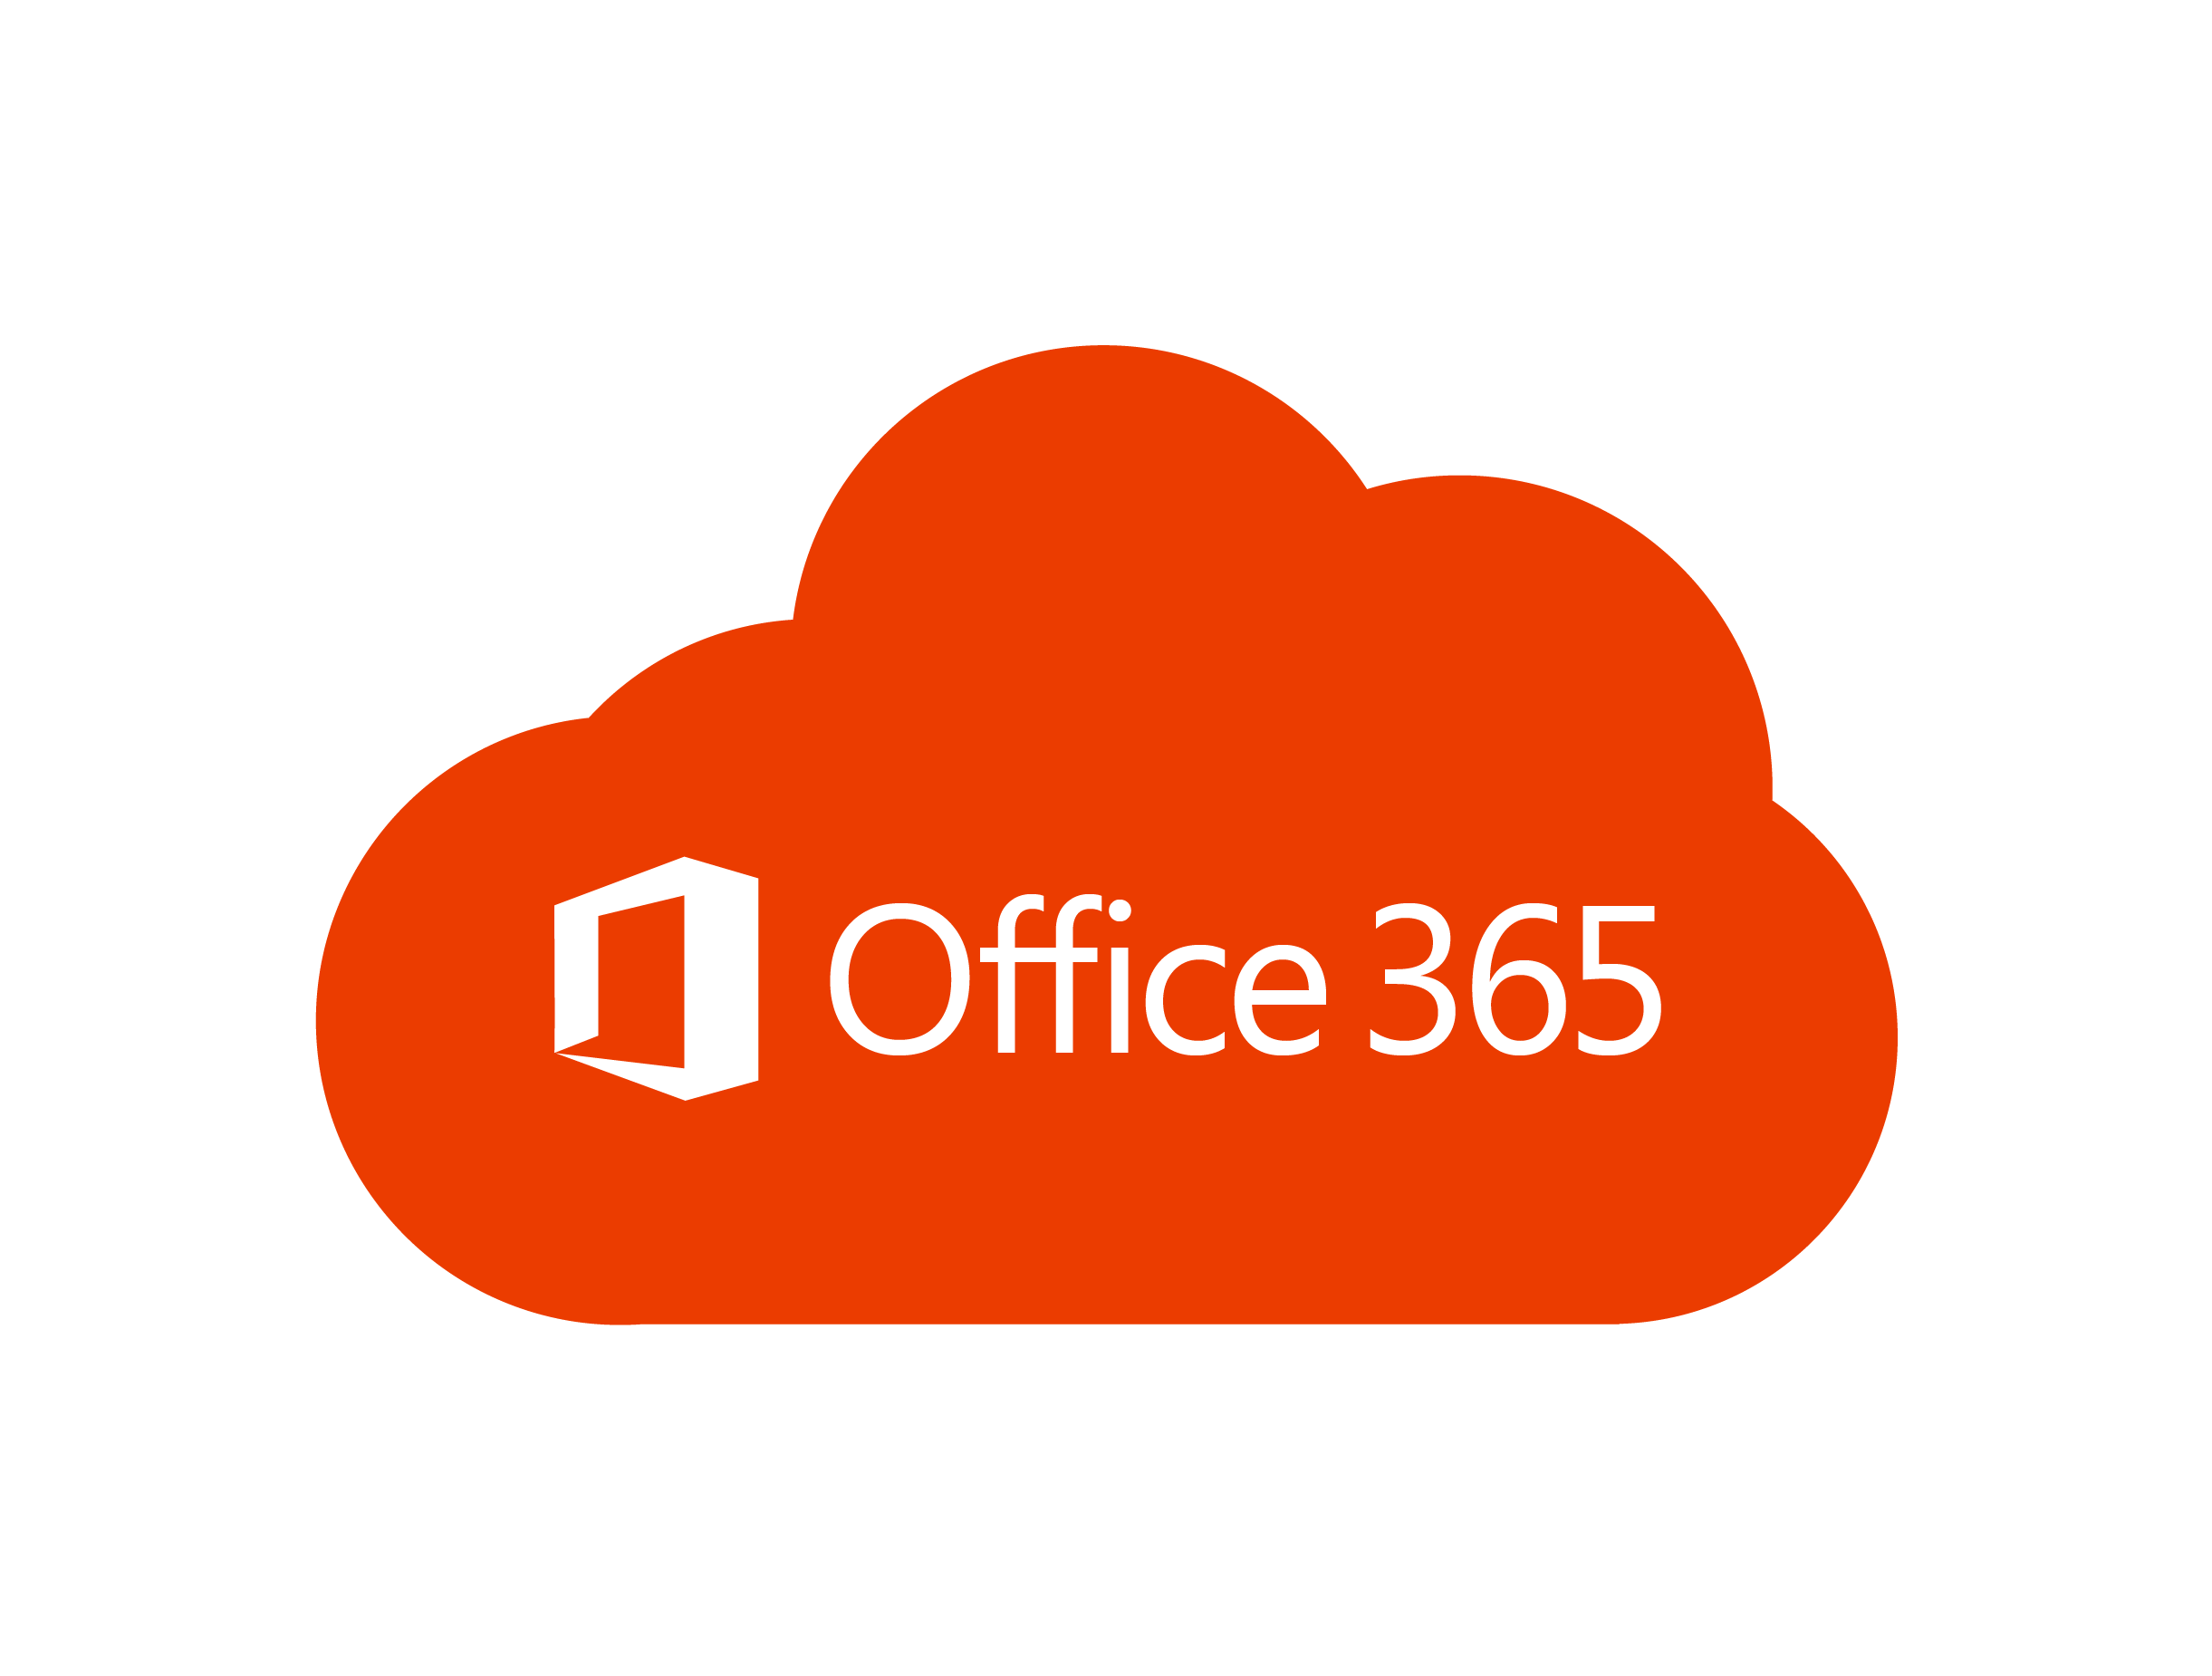 Download and install or reinstall Office 365 or Office 2016 on a PC or Mac